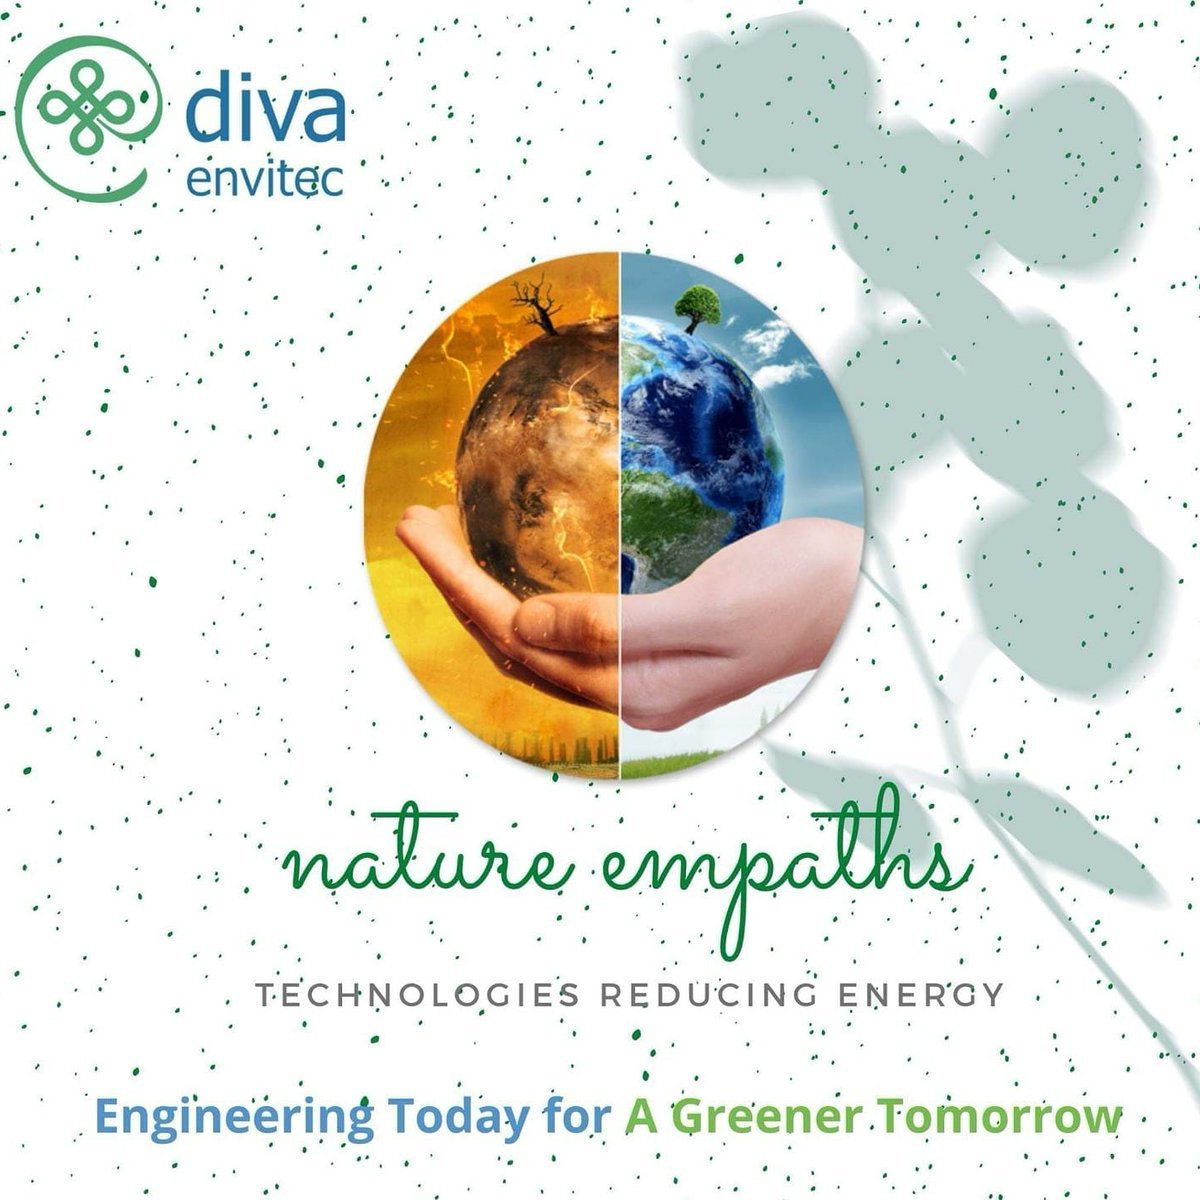 Empathy has been regarded by environmental thinkers as a key in conservation efforts.   #sustainable #hybrid #catalysis #wetairoxidation  #chemicalengineering #wastewatertreatment   #biotechnology #innovation #hydrocarbons #renewableenergy #oilgas #energy #scienceandtechnologypic.twitter.com/q37Zxt3iYf